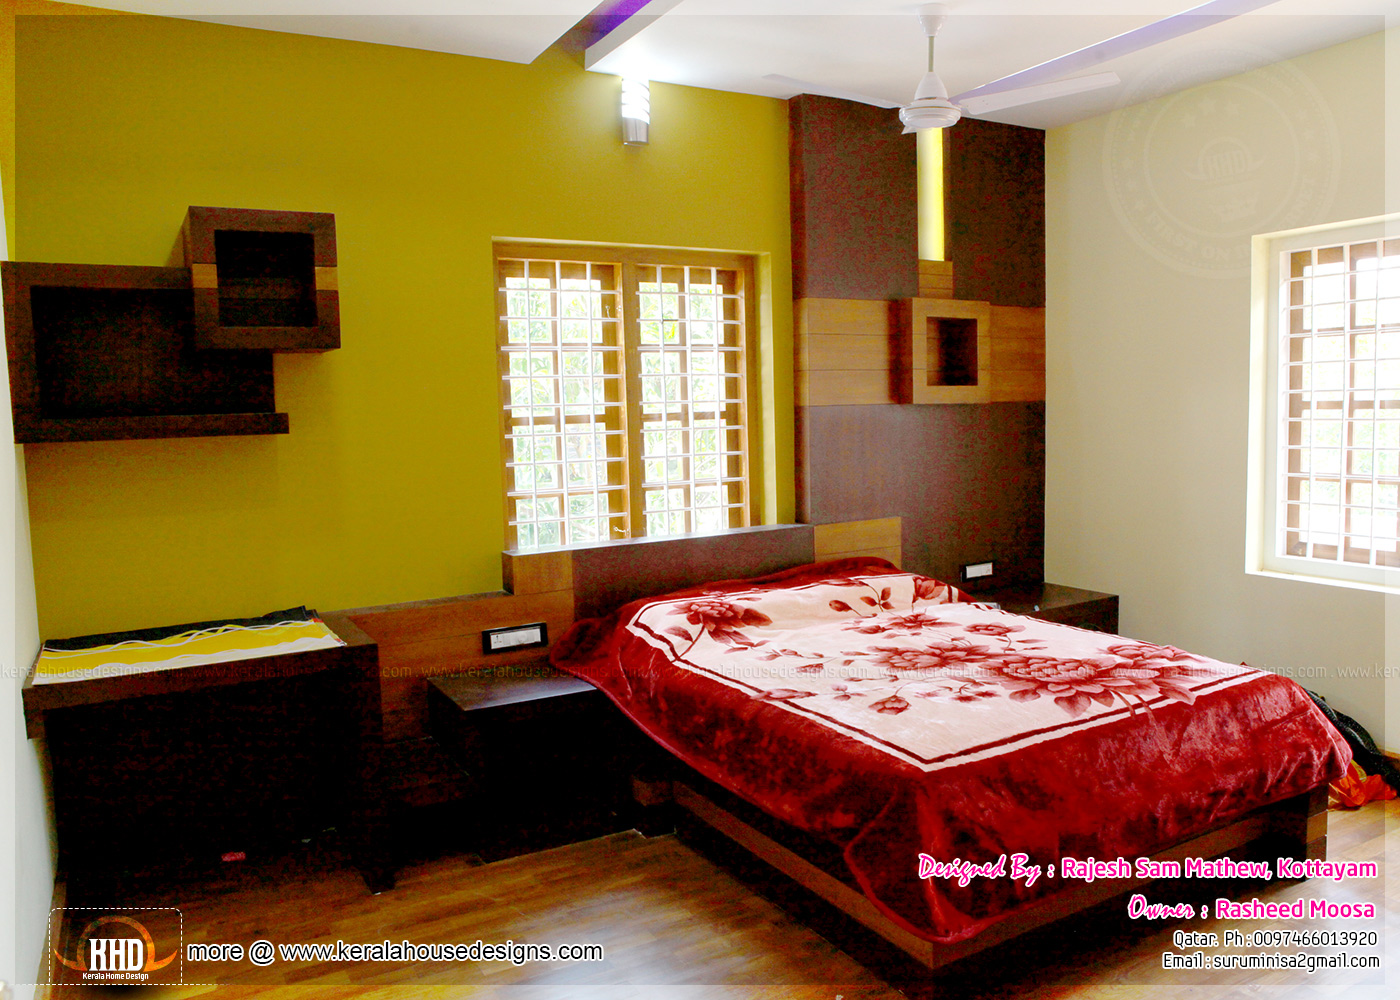 Kerala interior design with photos kerala home design for Simple indian bedroom interior design ideas